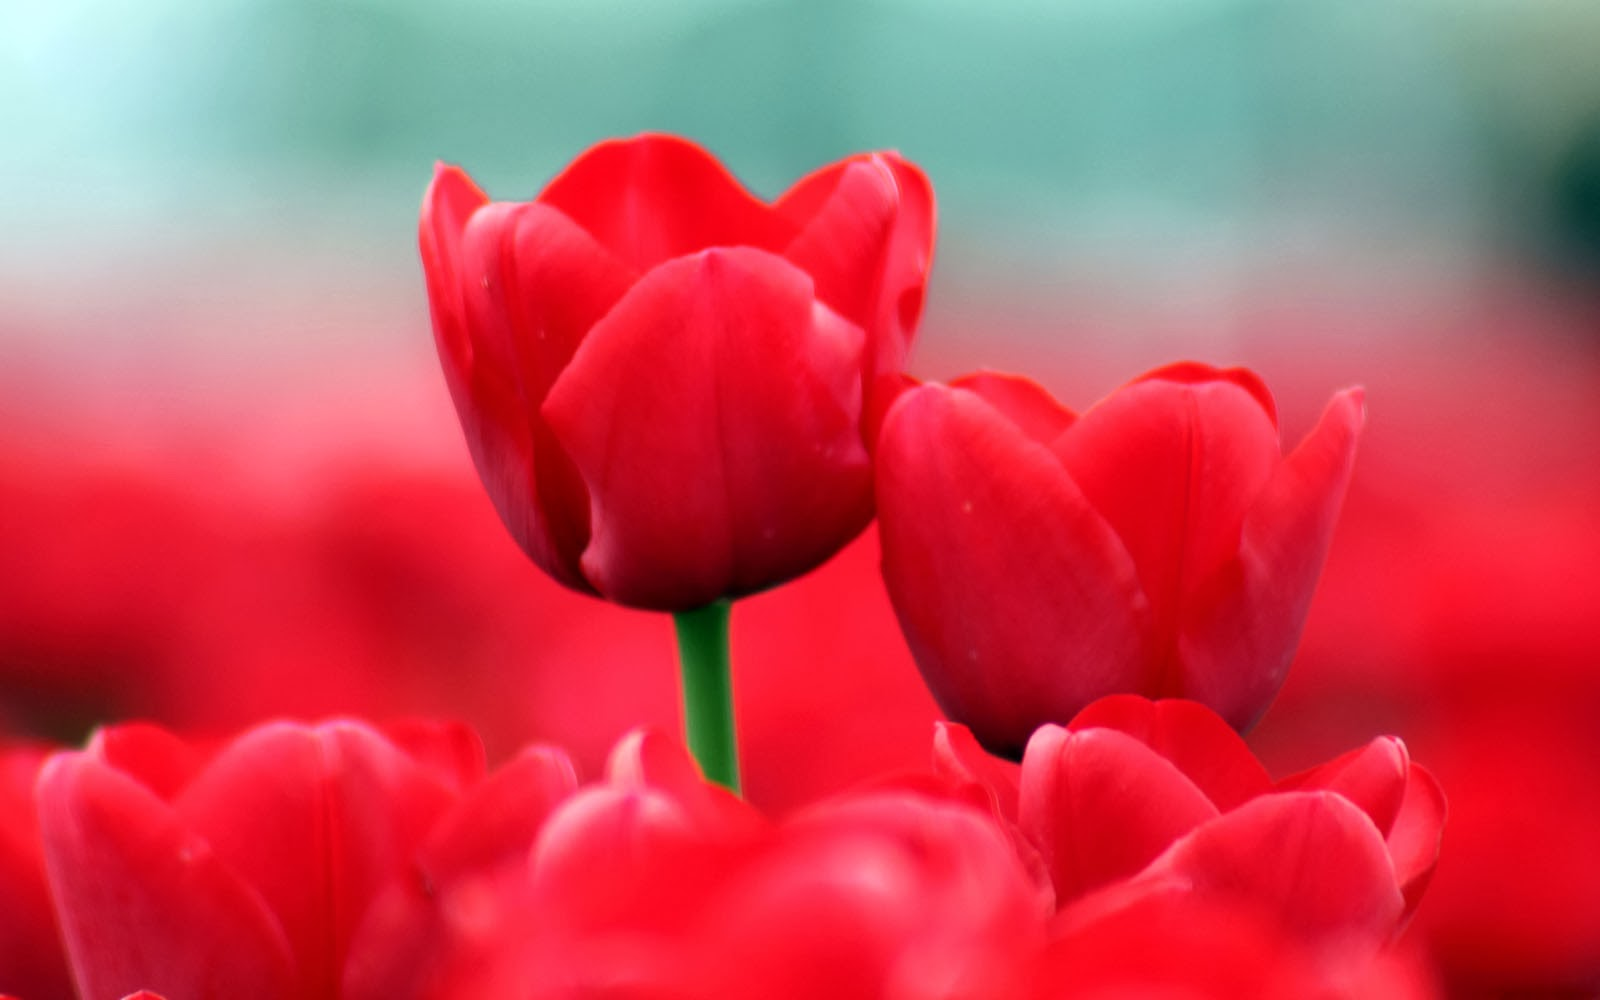 Wallpapers: Red Tulips Desktop Wallpapers